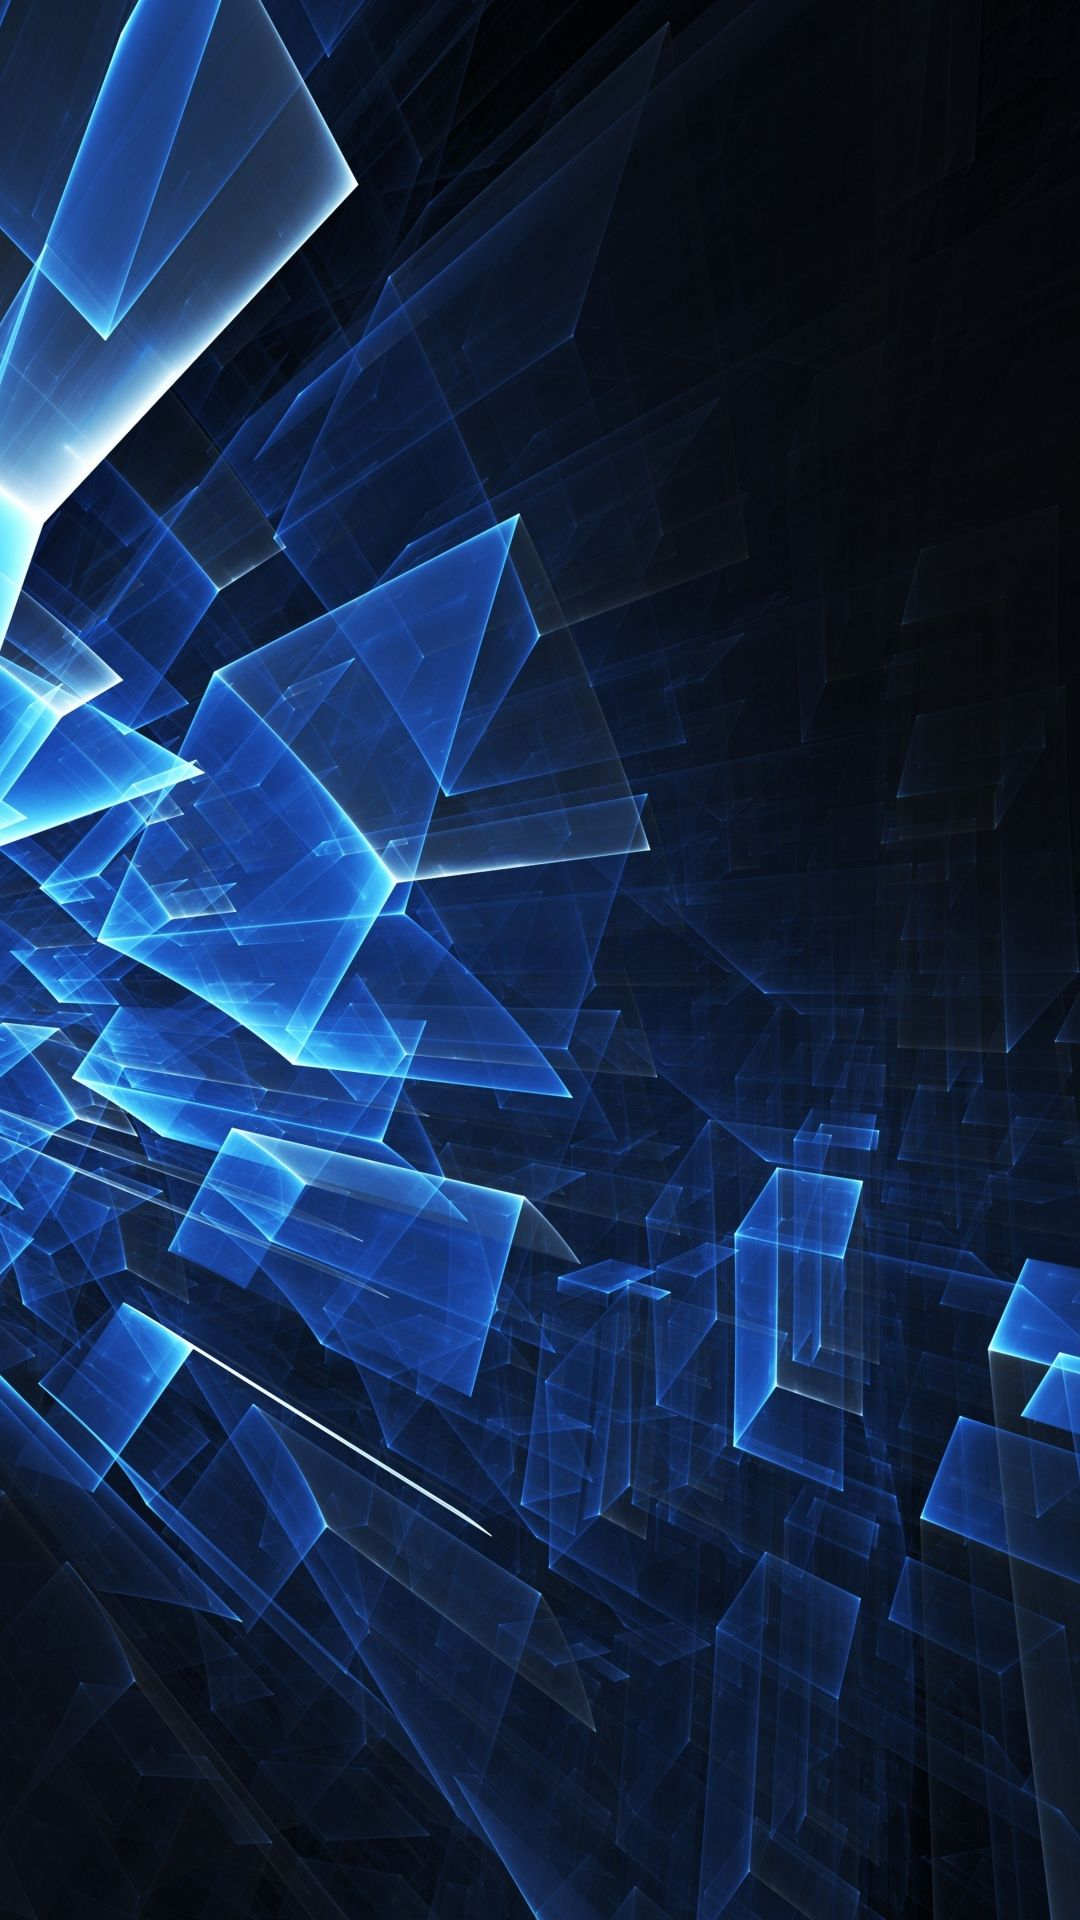 Wallpaper 3d High Resolution 1080 X 1920 Hd For Iphone And Android Abstract Wallpaper Iphone Wallpaper Cube Pattern